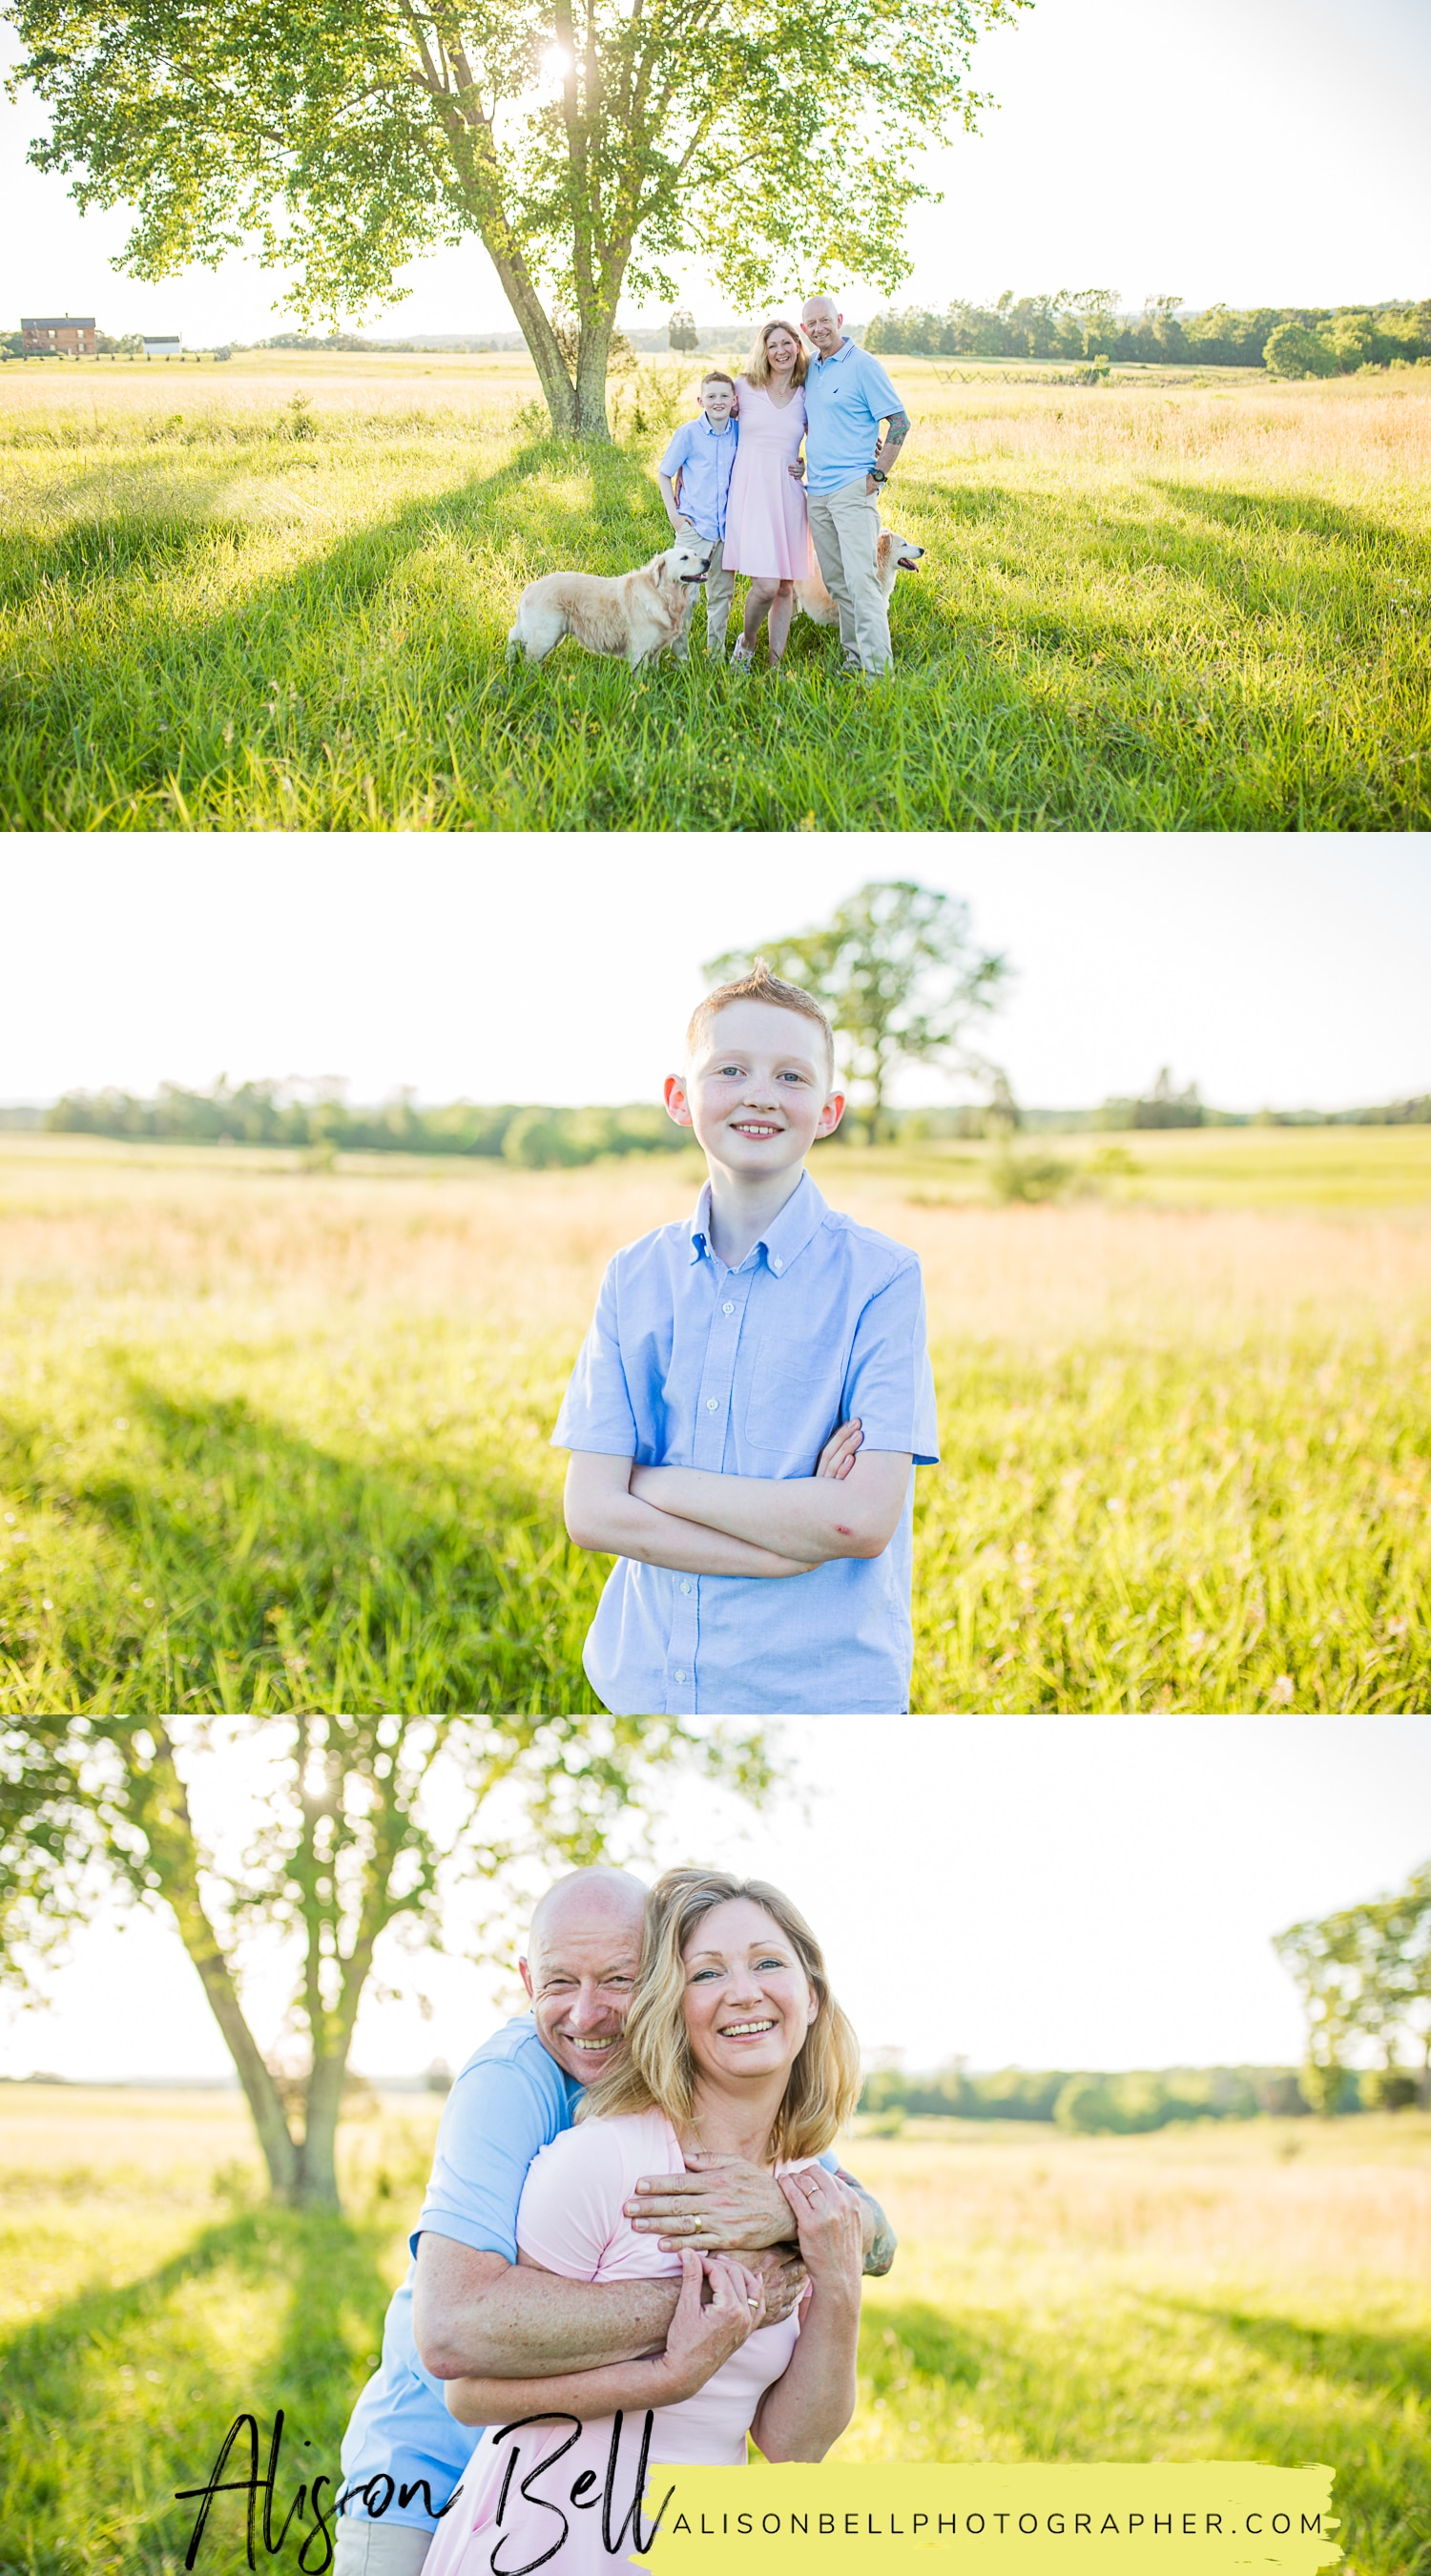 Family of 3, older child, 10 year old, with dogs at Manassas Battlefield in Virginia by Alison Bell, Photographer, alisonbellphotographer.com